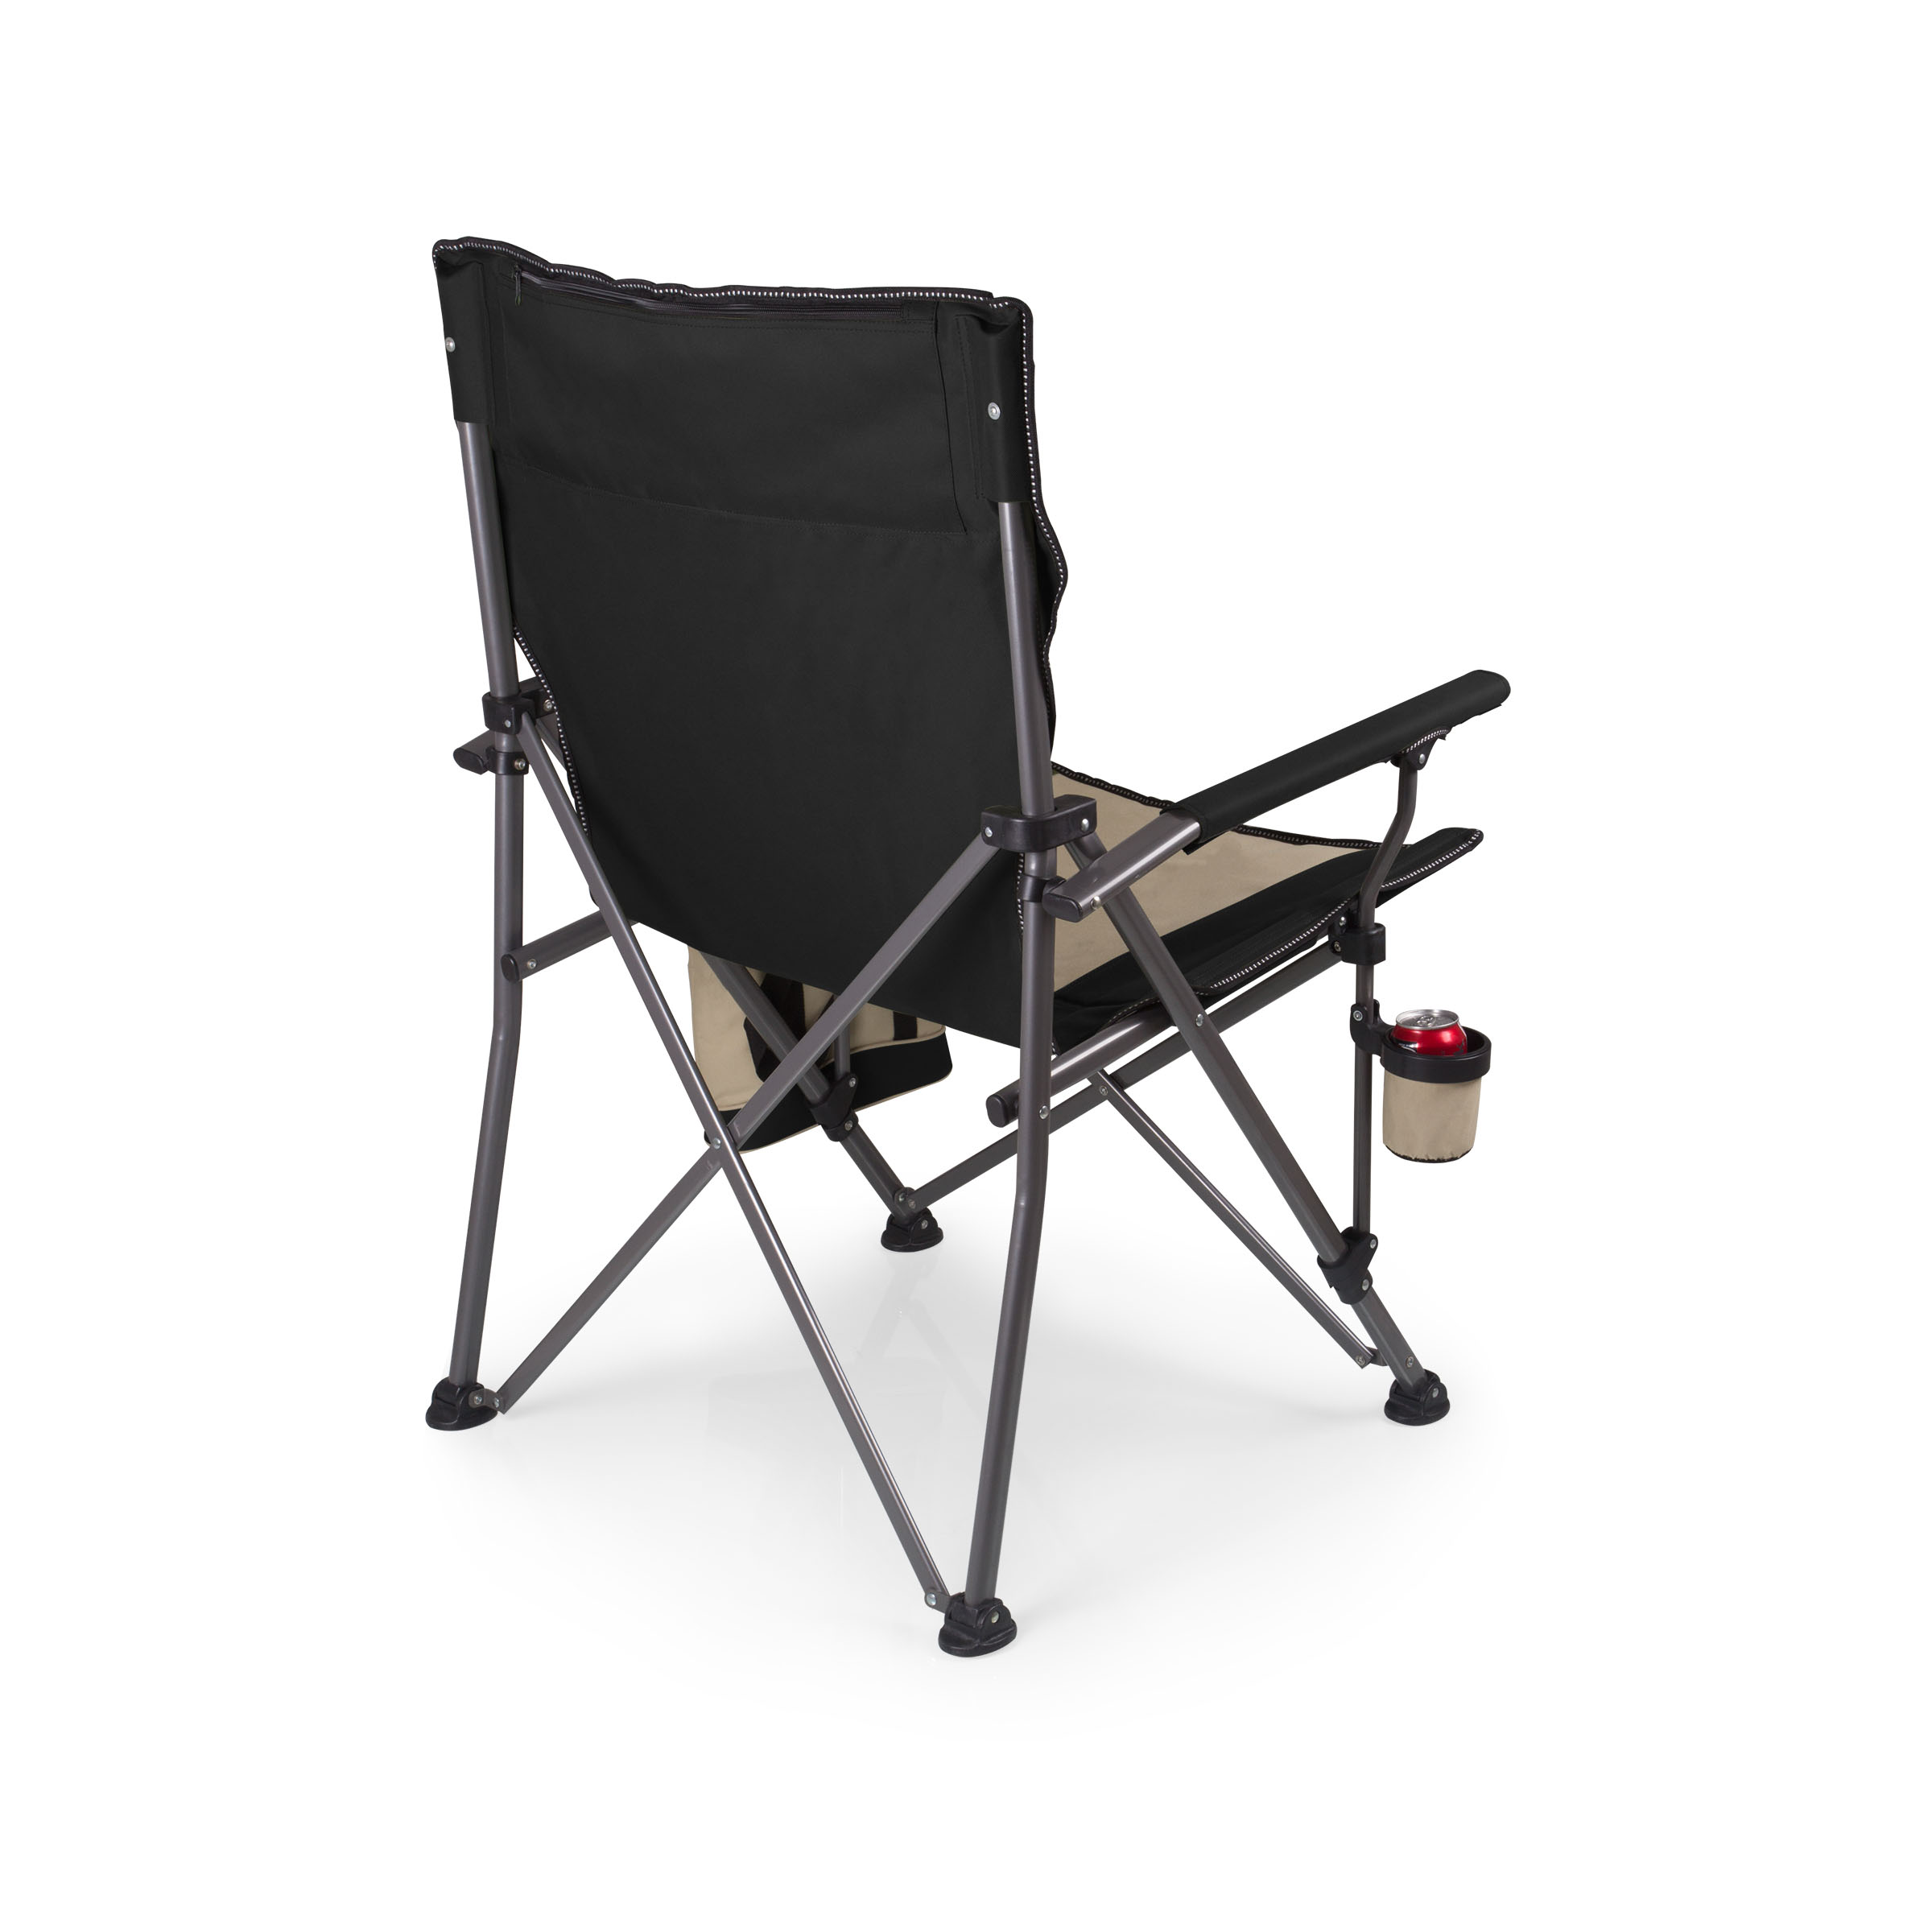 Picnic Time Stadium Chair Big Bear Camp Chair Black Picnic Time Family Of Brands